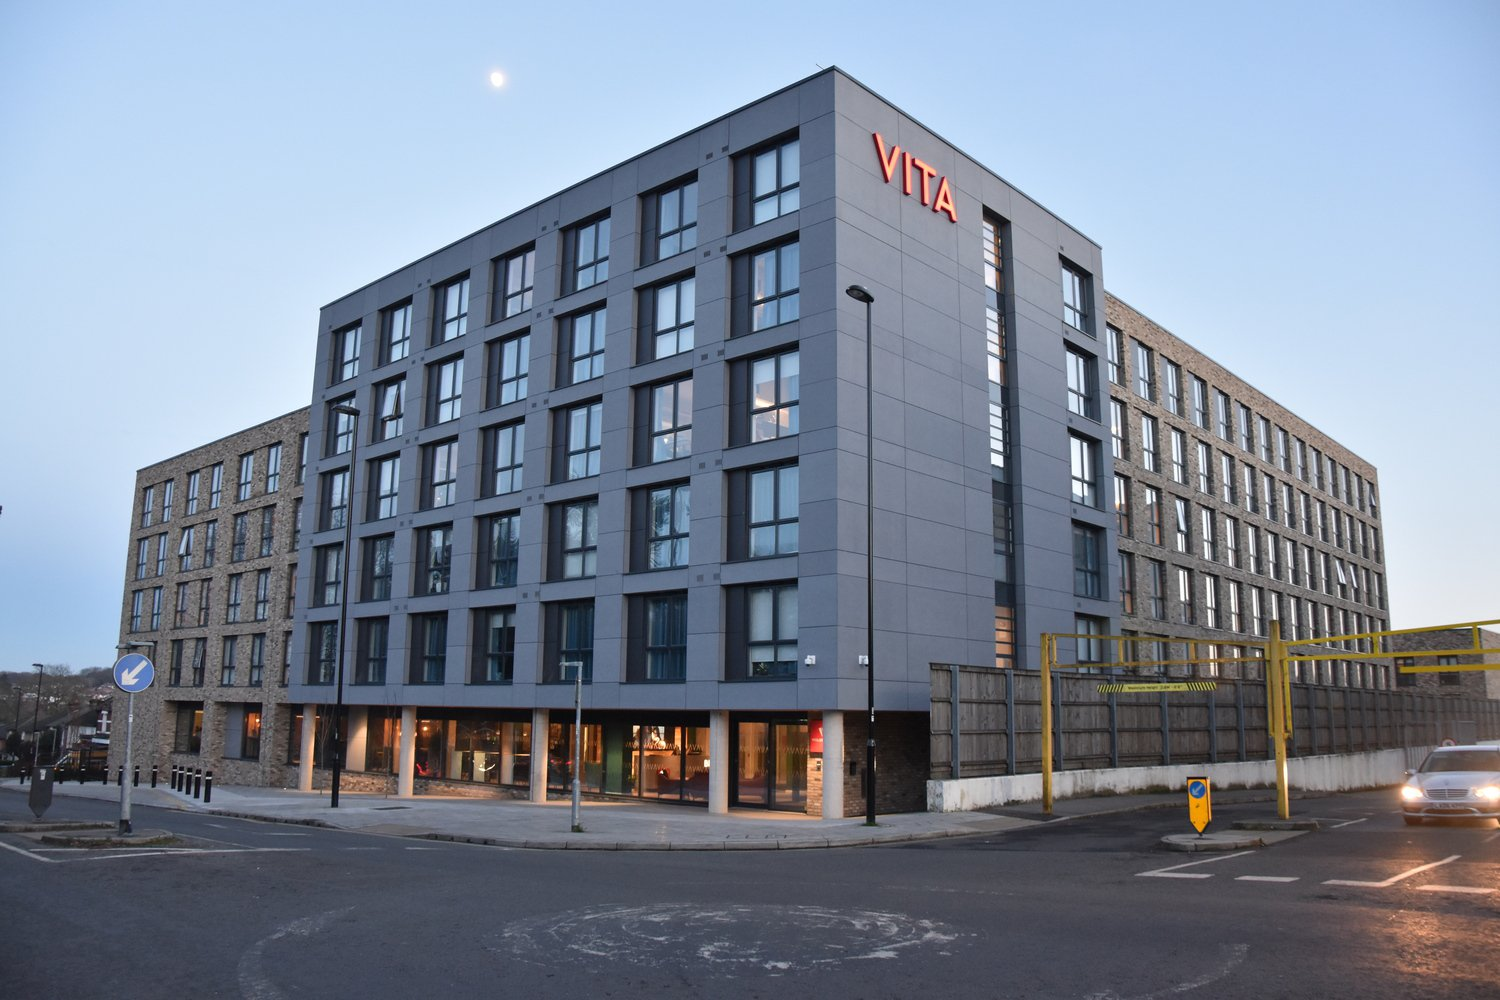 Image of the outside of the Vita Student Accommodation in Southampton, a six storey building